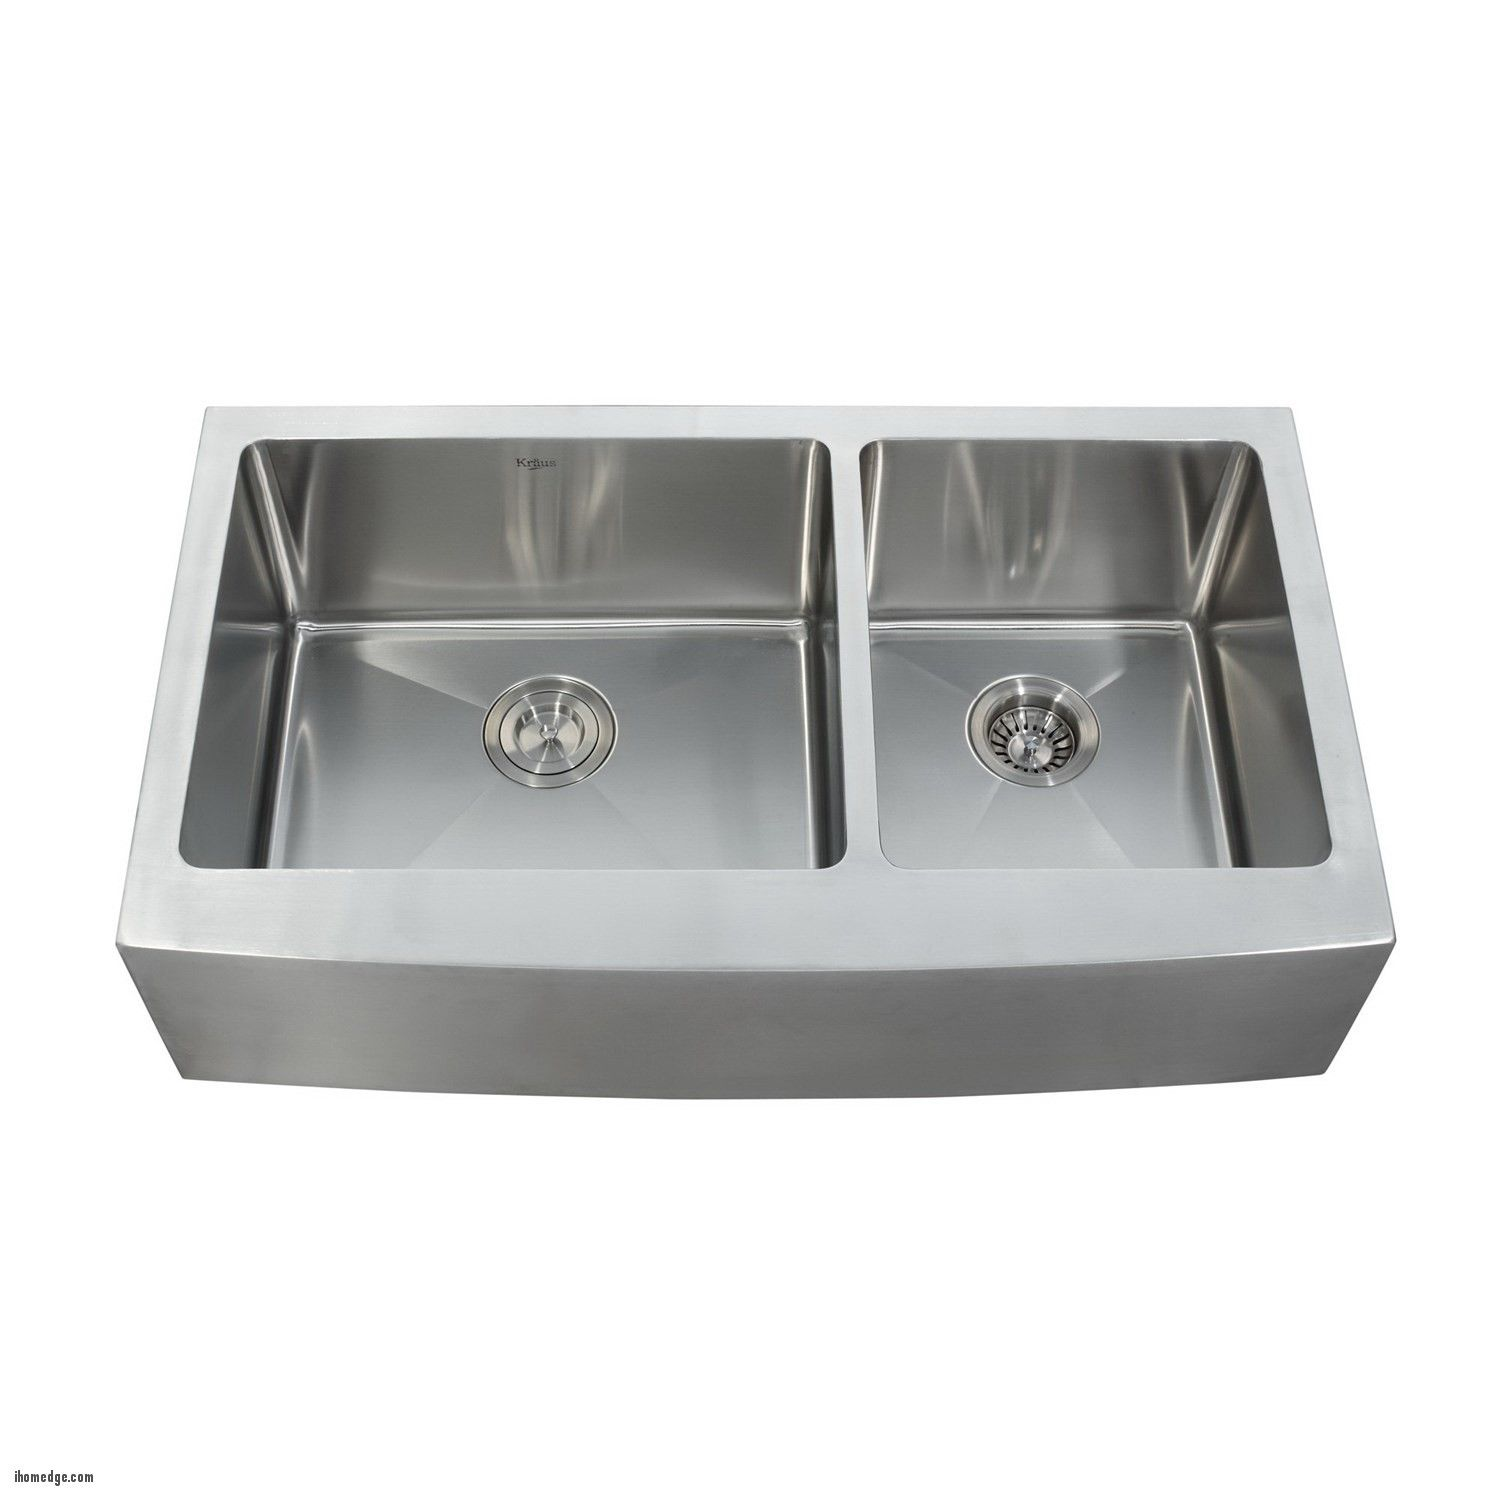 Inspirational unique stainless steel apron sink kraus